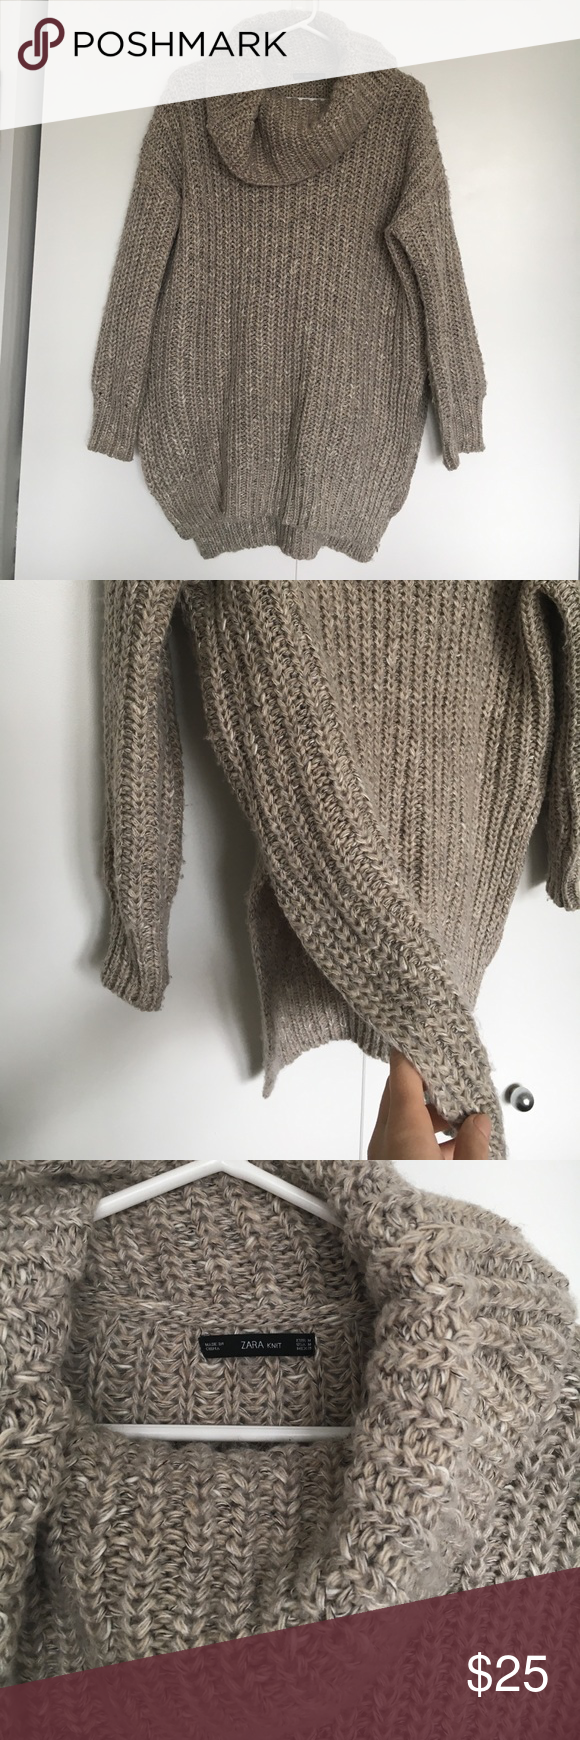 Zara Cowl Sweater | Conditioning, Customer support and Delivery